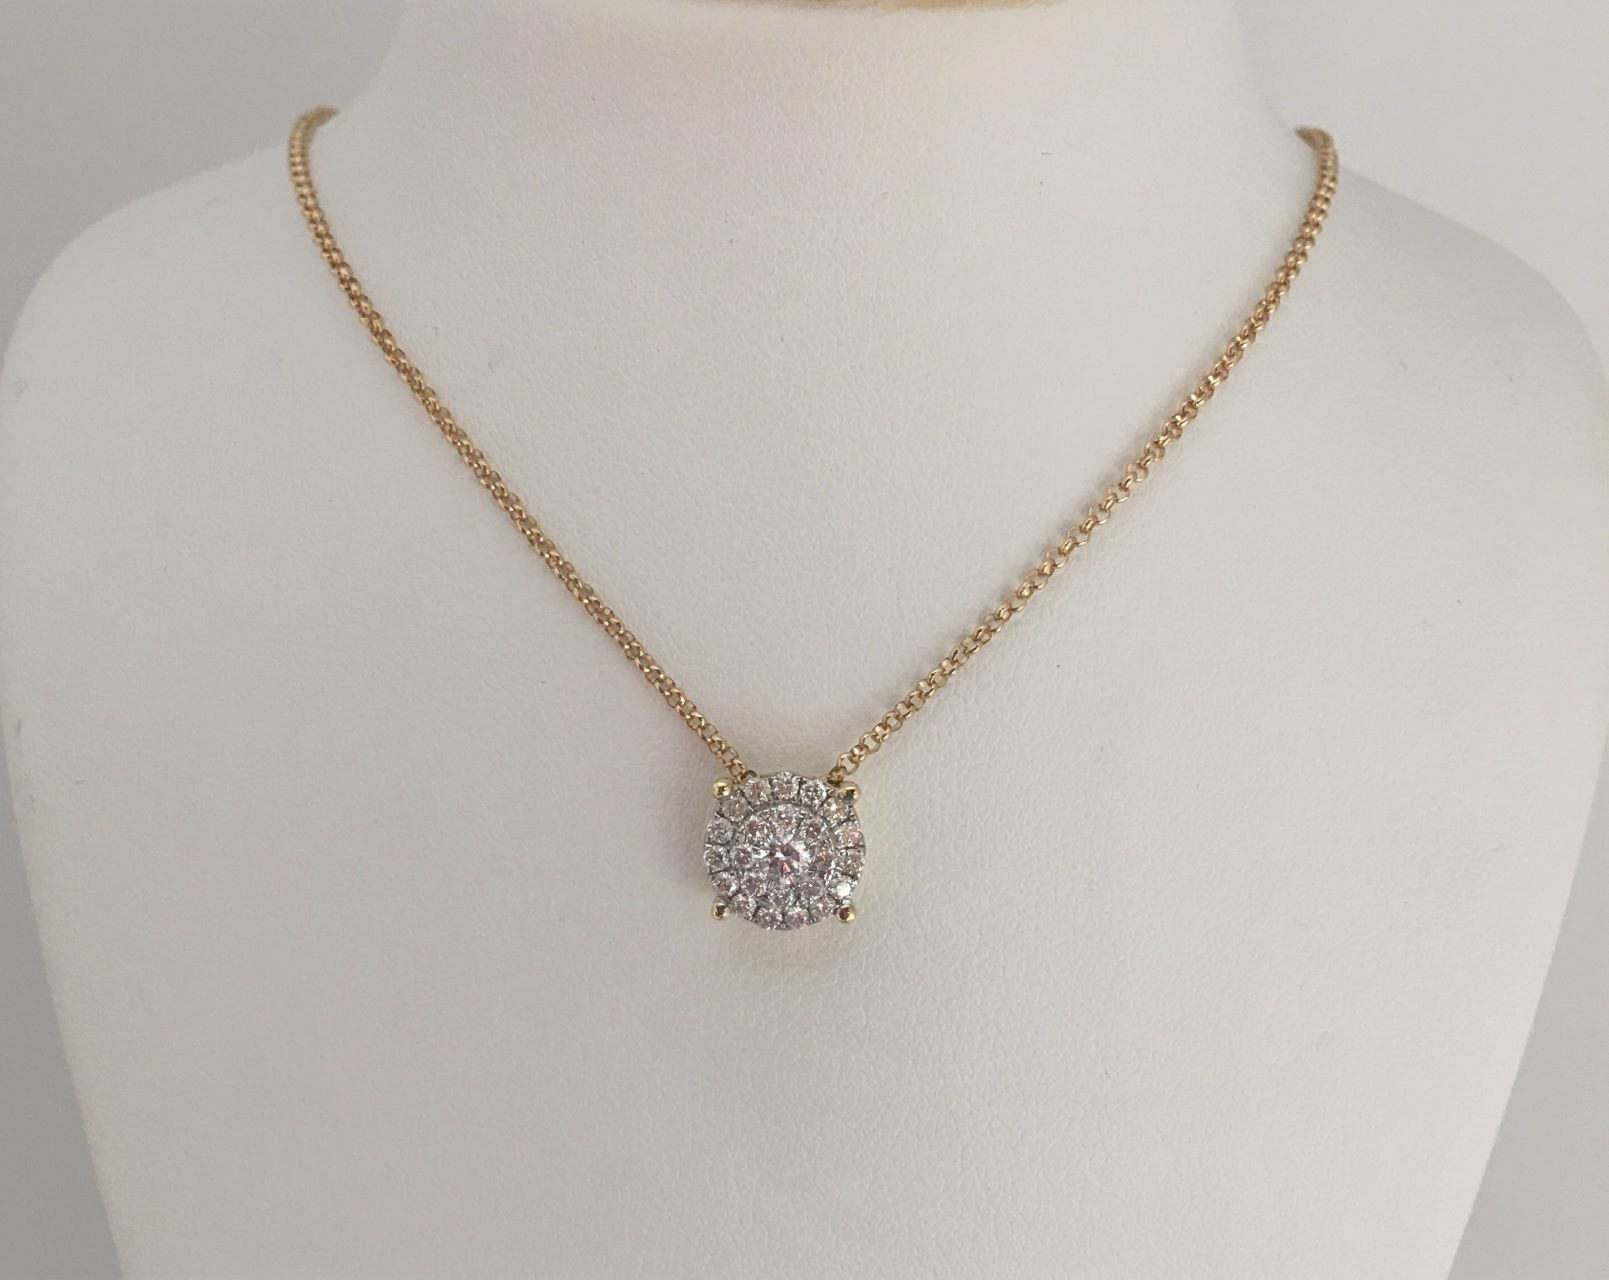 1/3 Carats Cluster Diamond Pendant With Chain